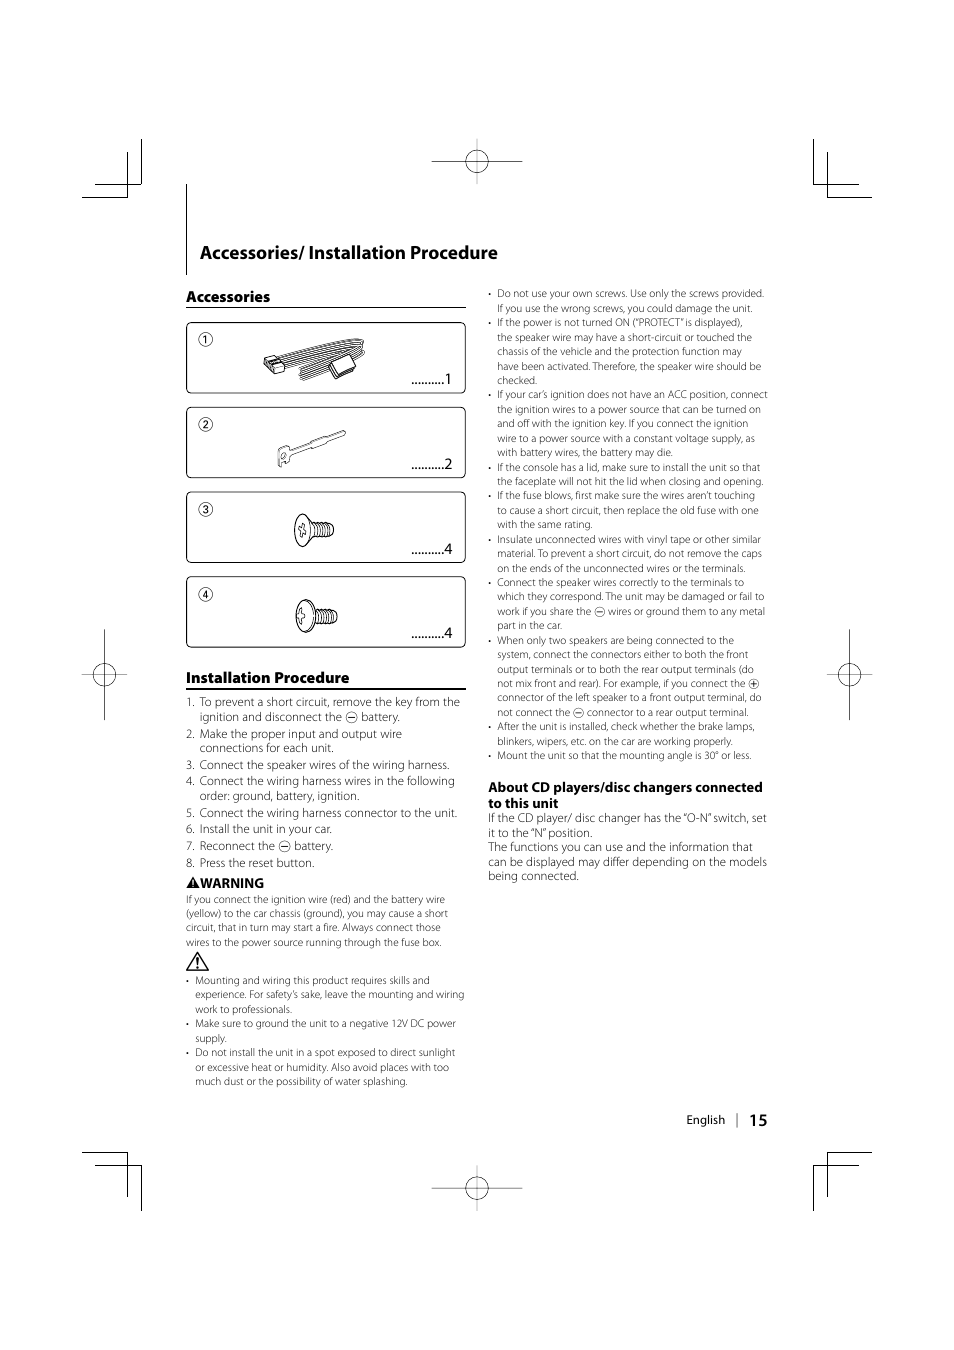 kenwood kdc mp142 wiring diagram 2 aiphone intercom accessories installation procedure user manual page 15 56